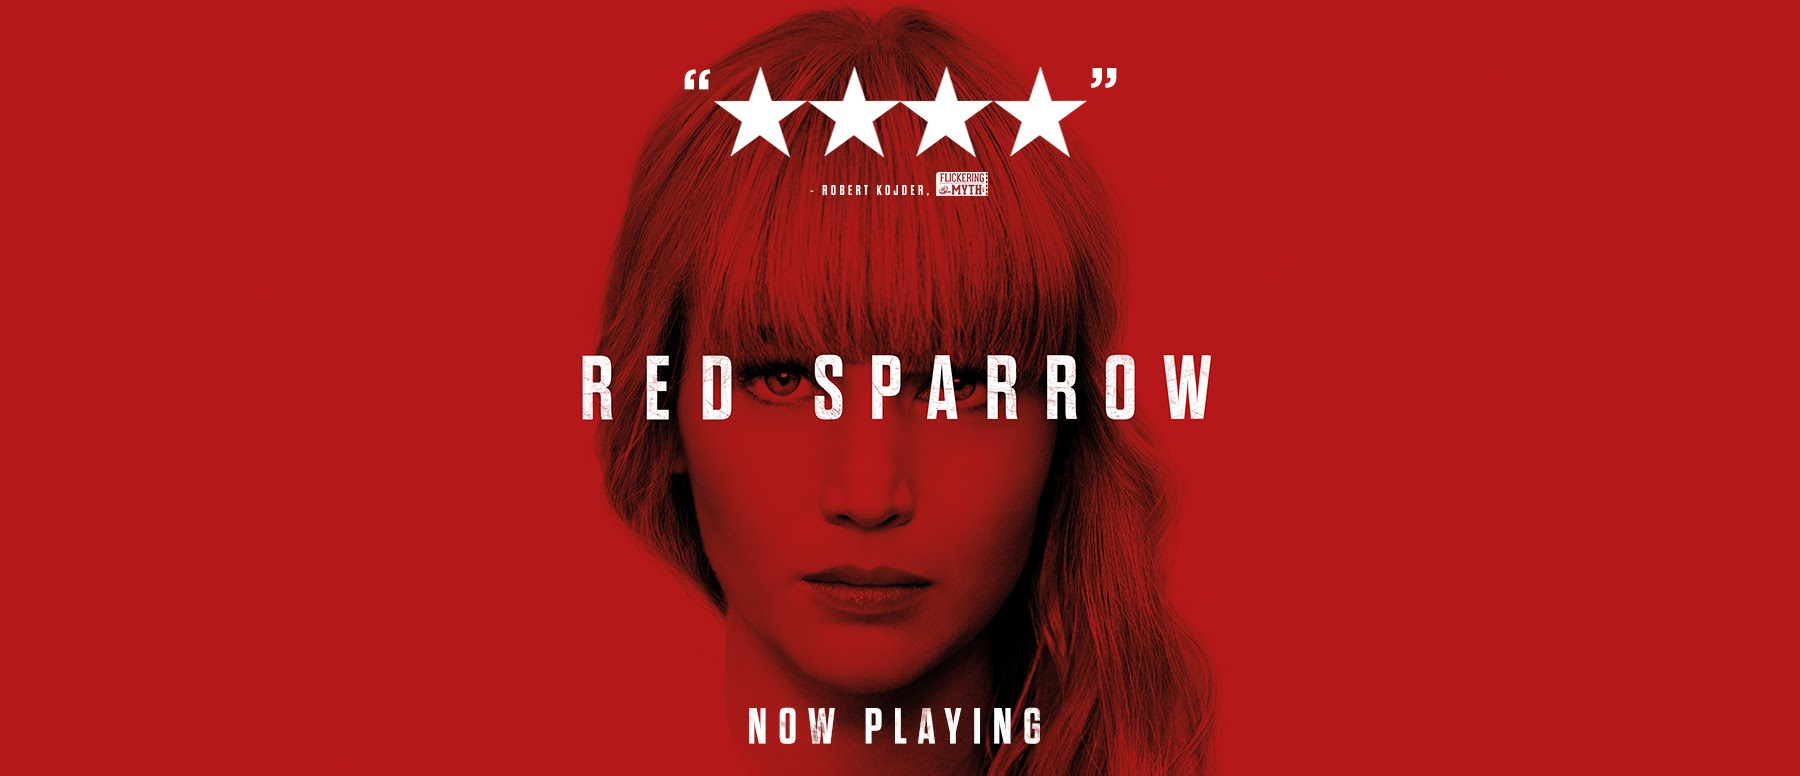 Red Sparrow 2018 Full Movie Download And Online WATCH English-Hindi hdrip  480p,720p, 1080p